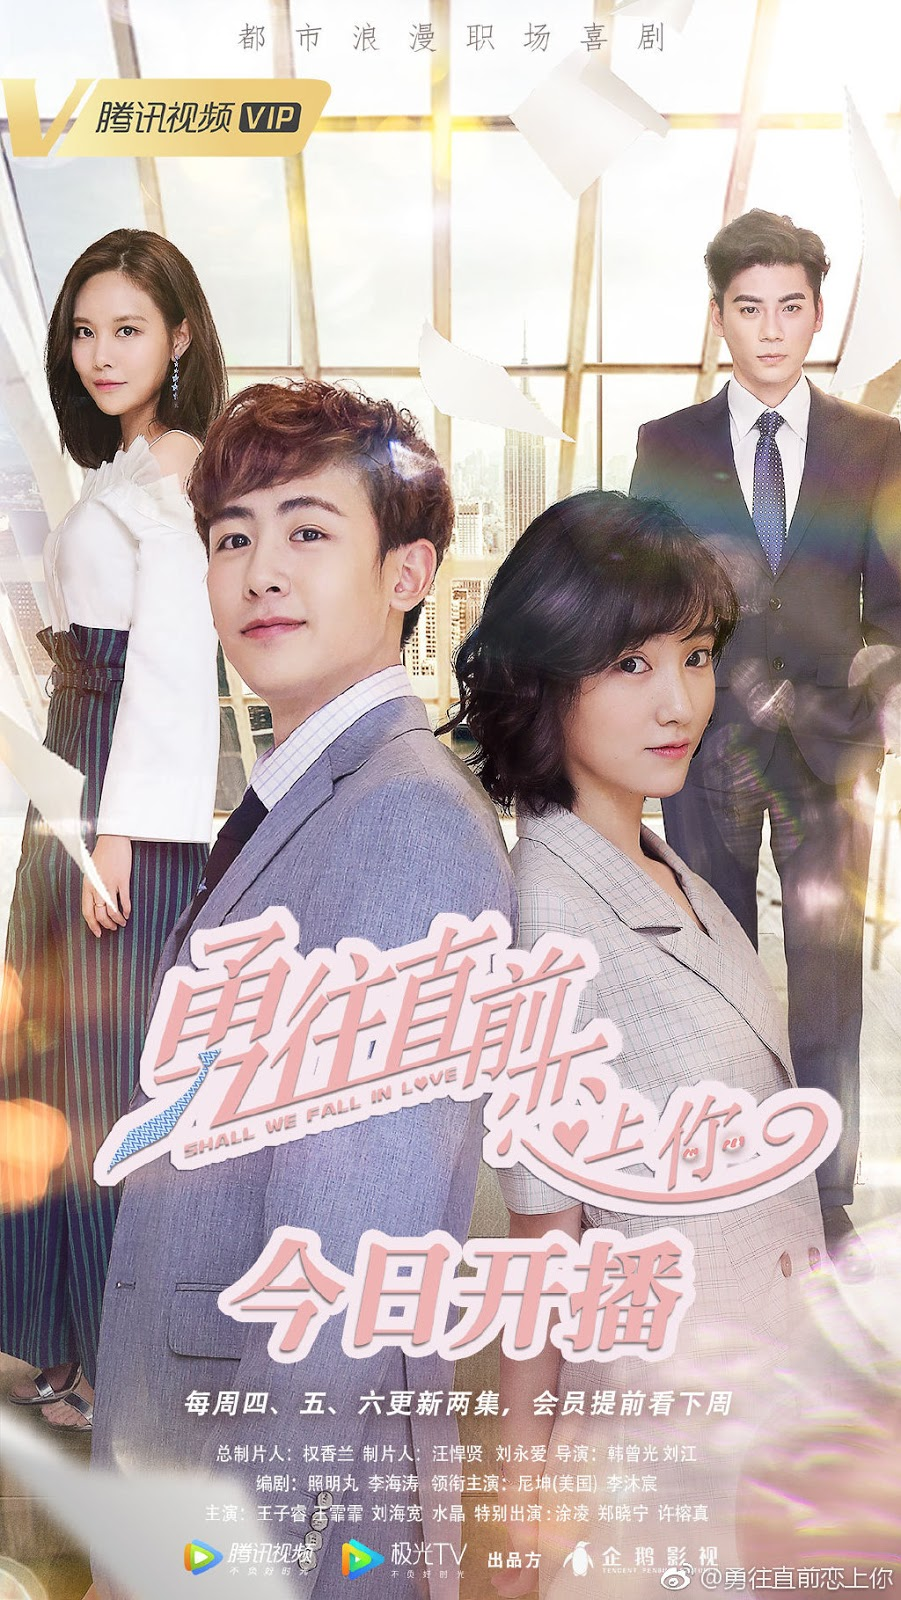 2PM's Nichkhun reunite with Fei in Tencent drama Shall We